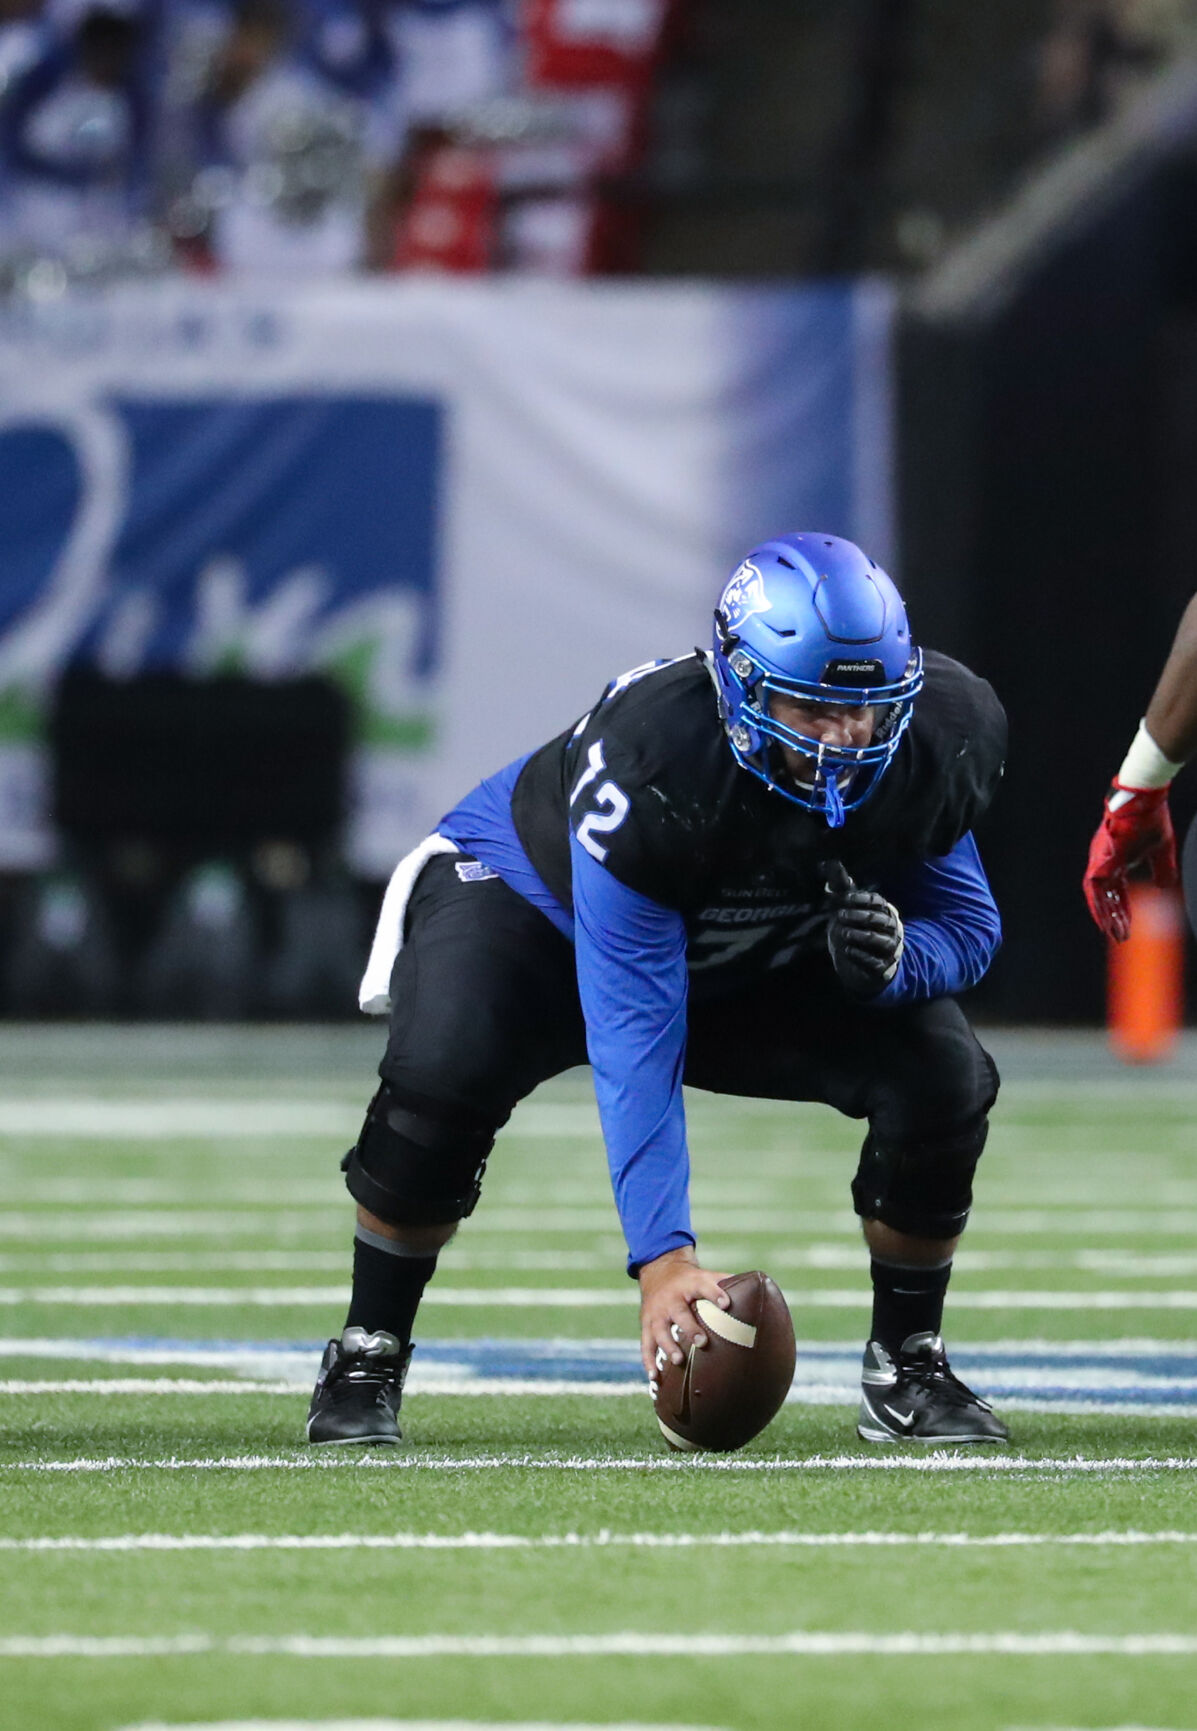 Gabe Mobley at Georgia State